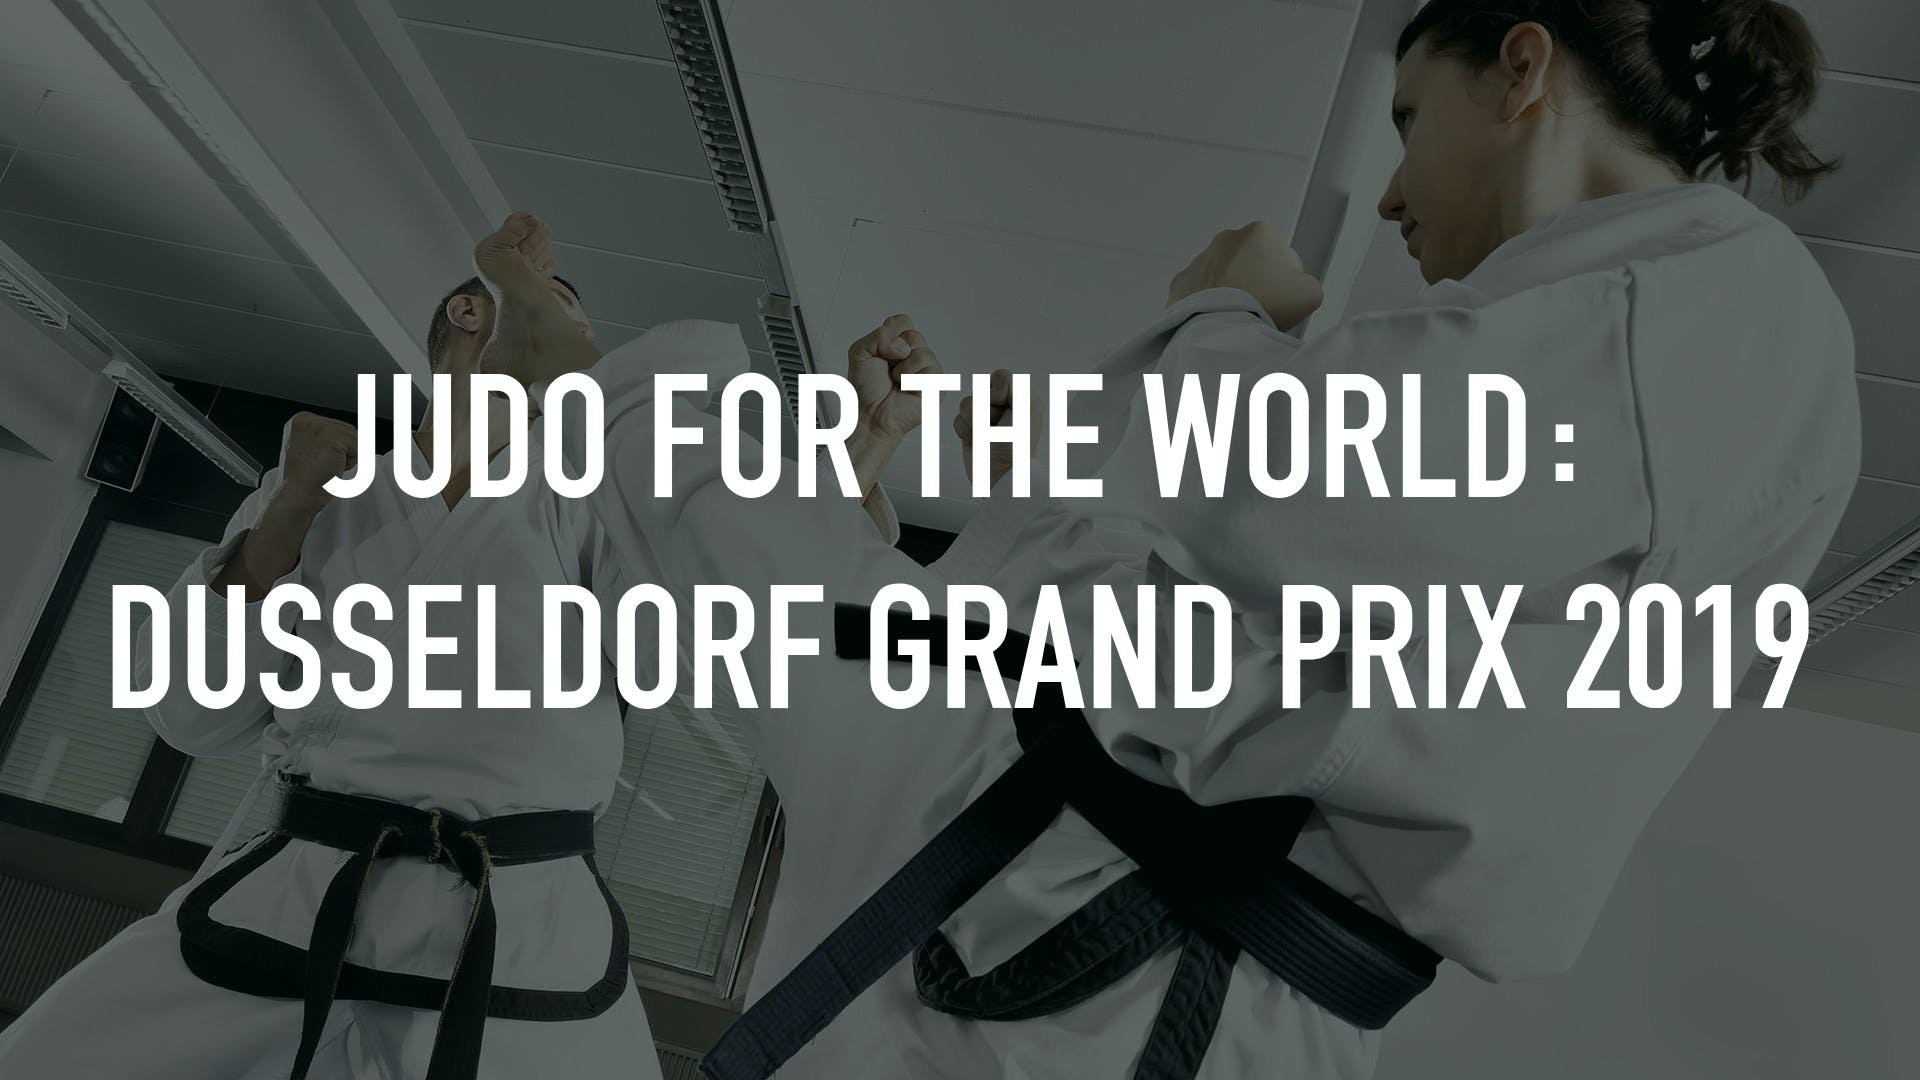 Watch Judo for the World: Dusseldorf Grand Prix 2019